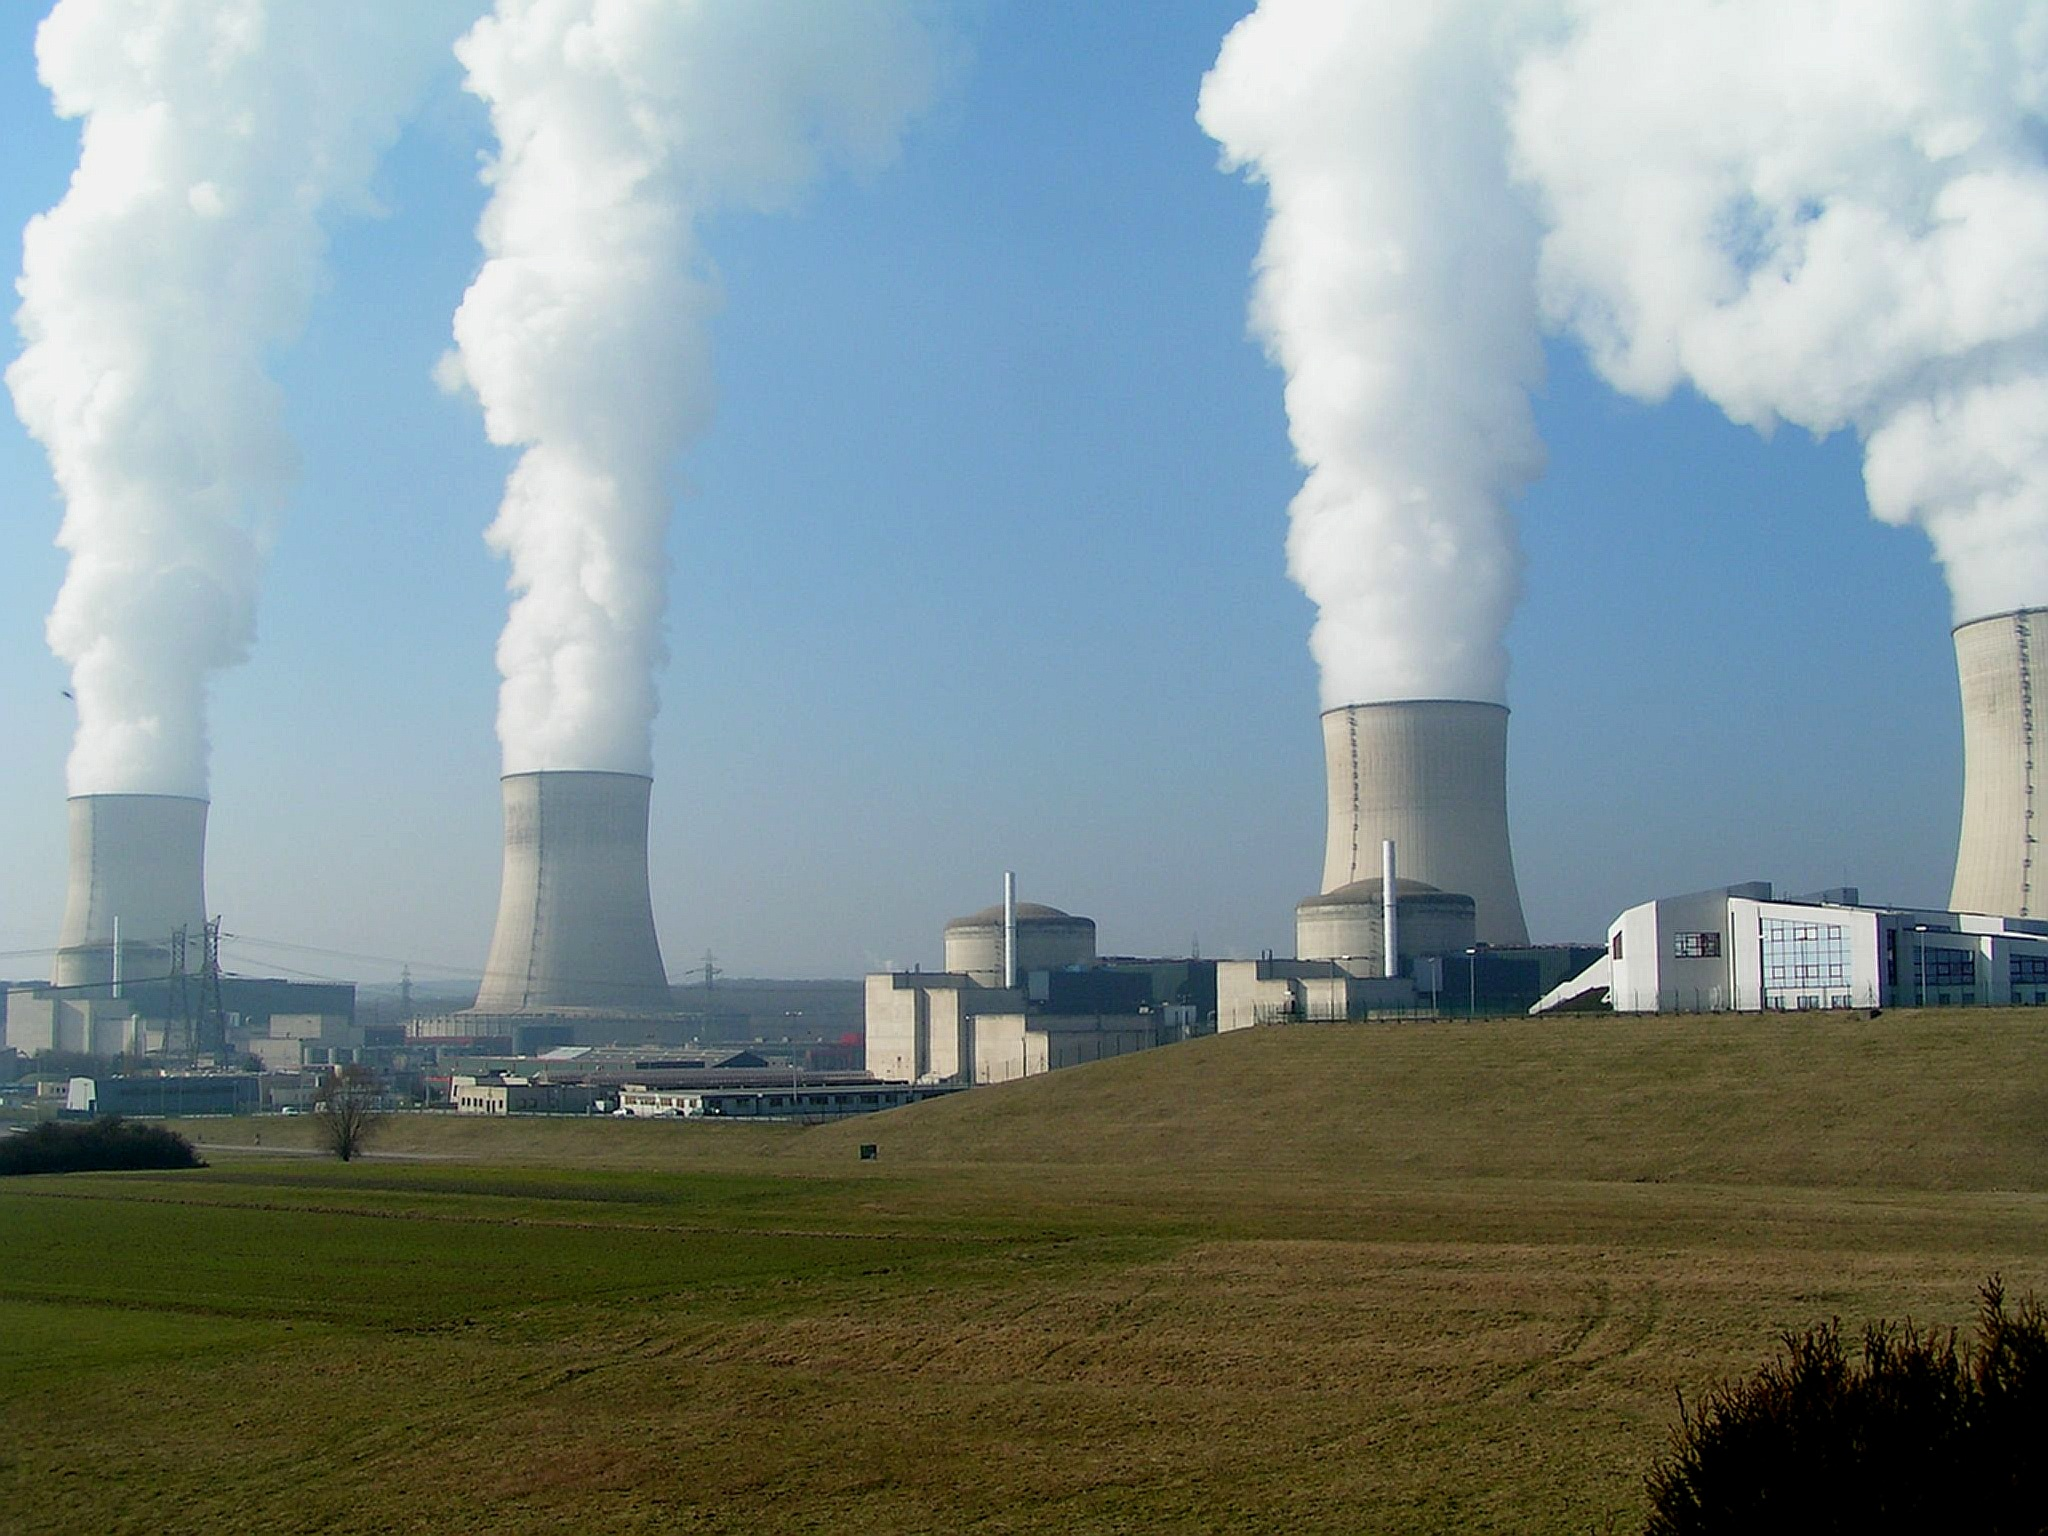 http://upload.wikimedia.org/wikipedia/commons/4/4e/Nuclear_Power_Plant_Cattenom.jpg